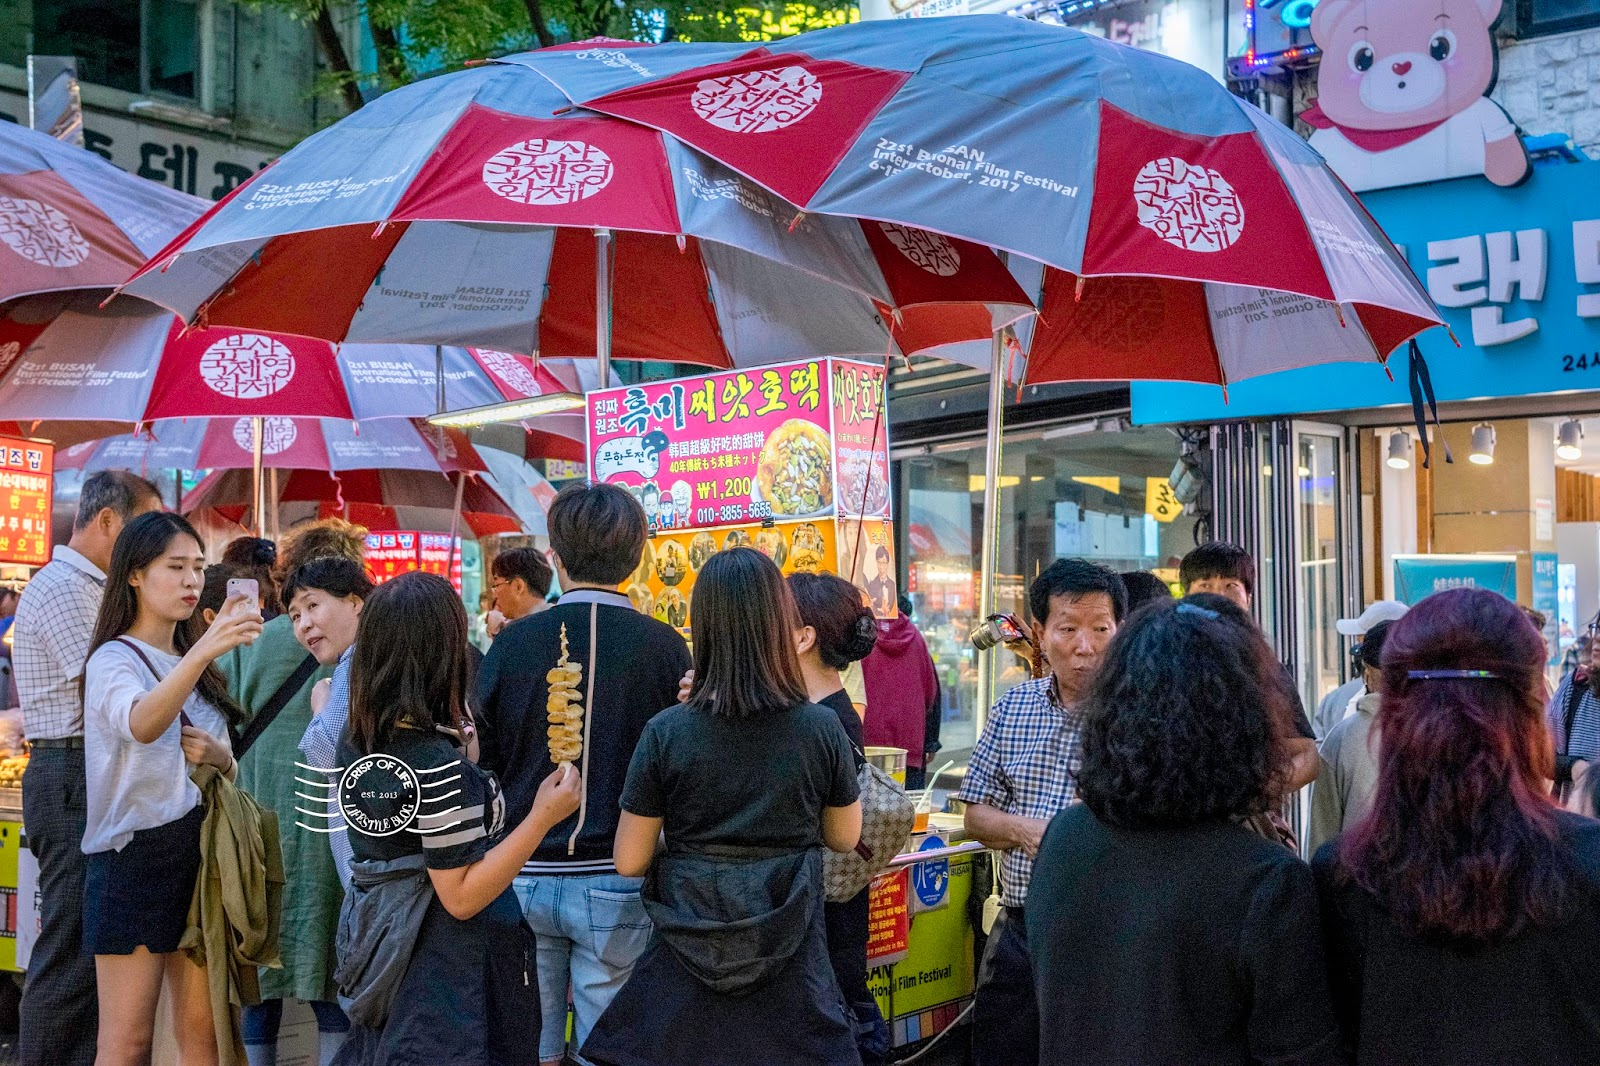 BIFF Square Busan Heaven For Street Food